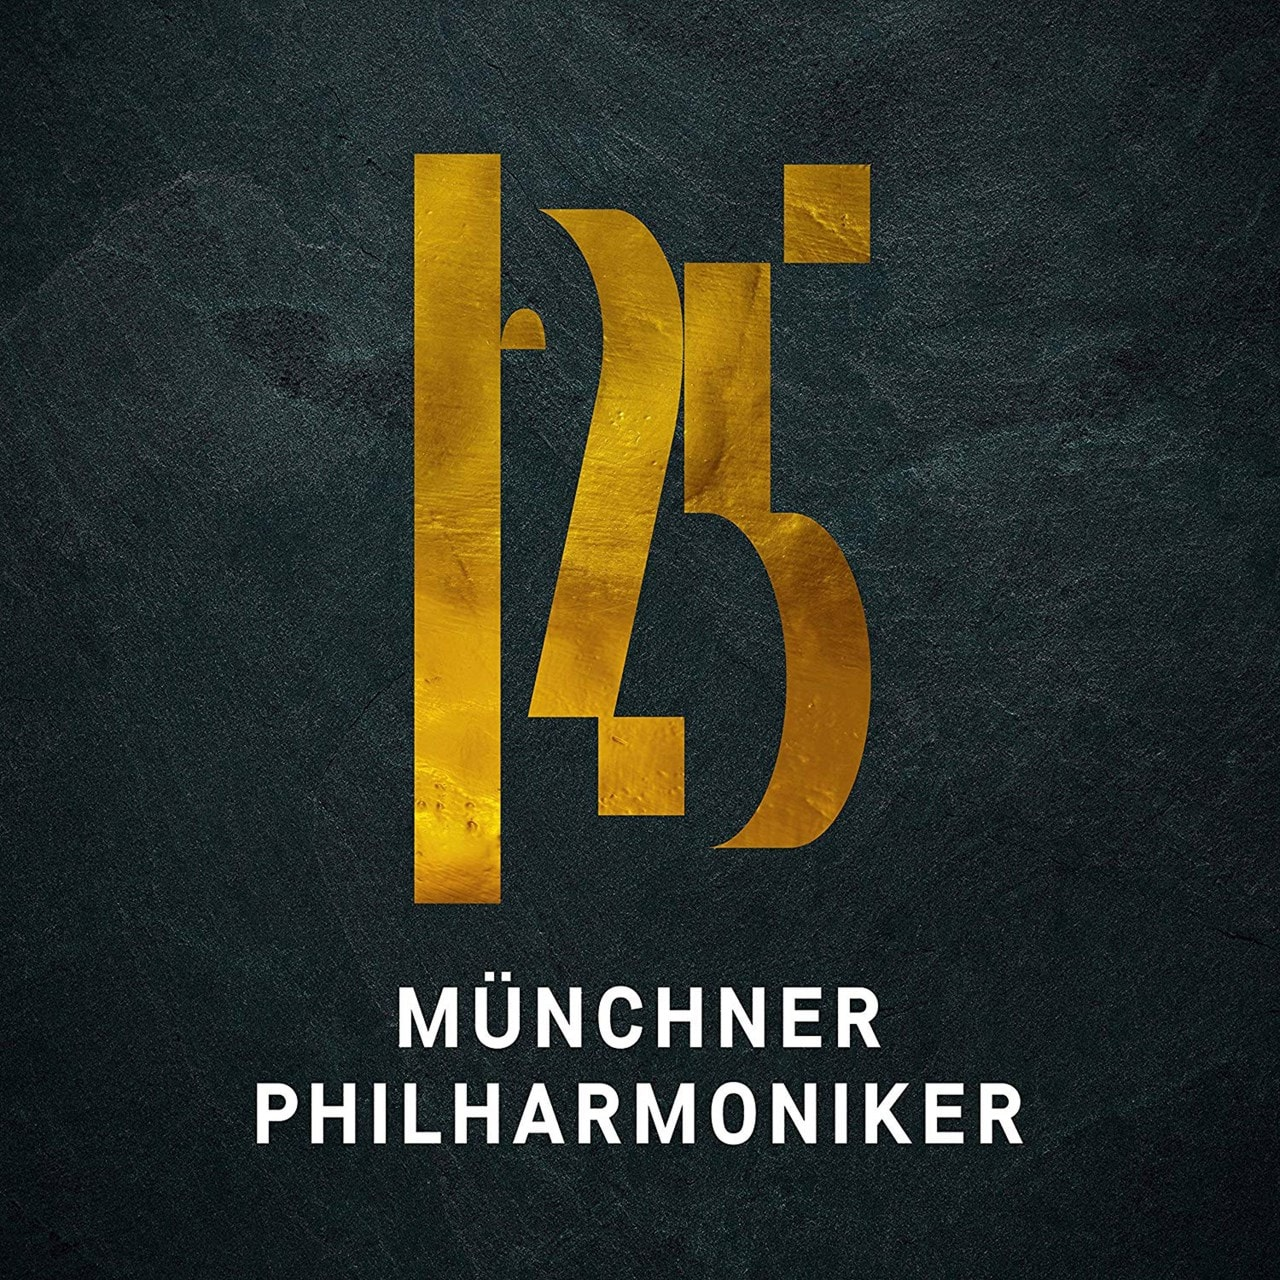 125 Years of Munchner Philharmoniker - 2